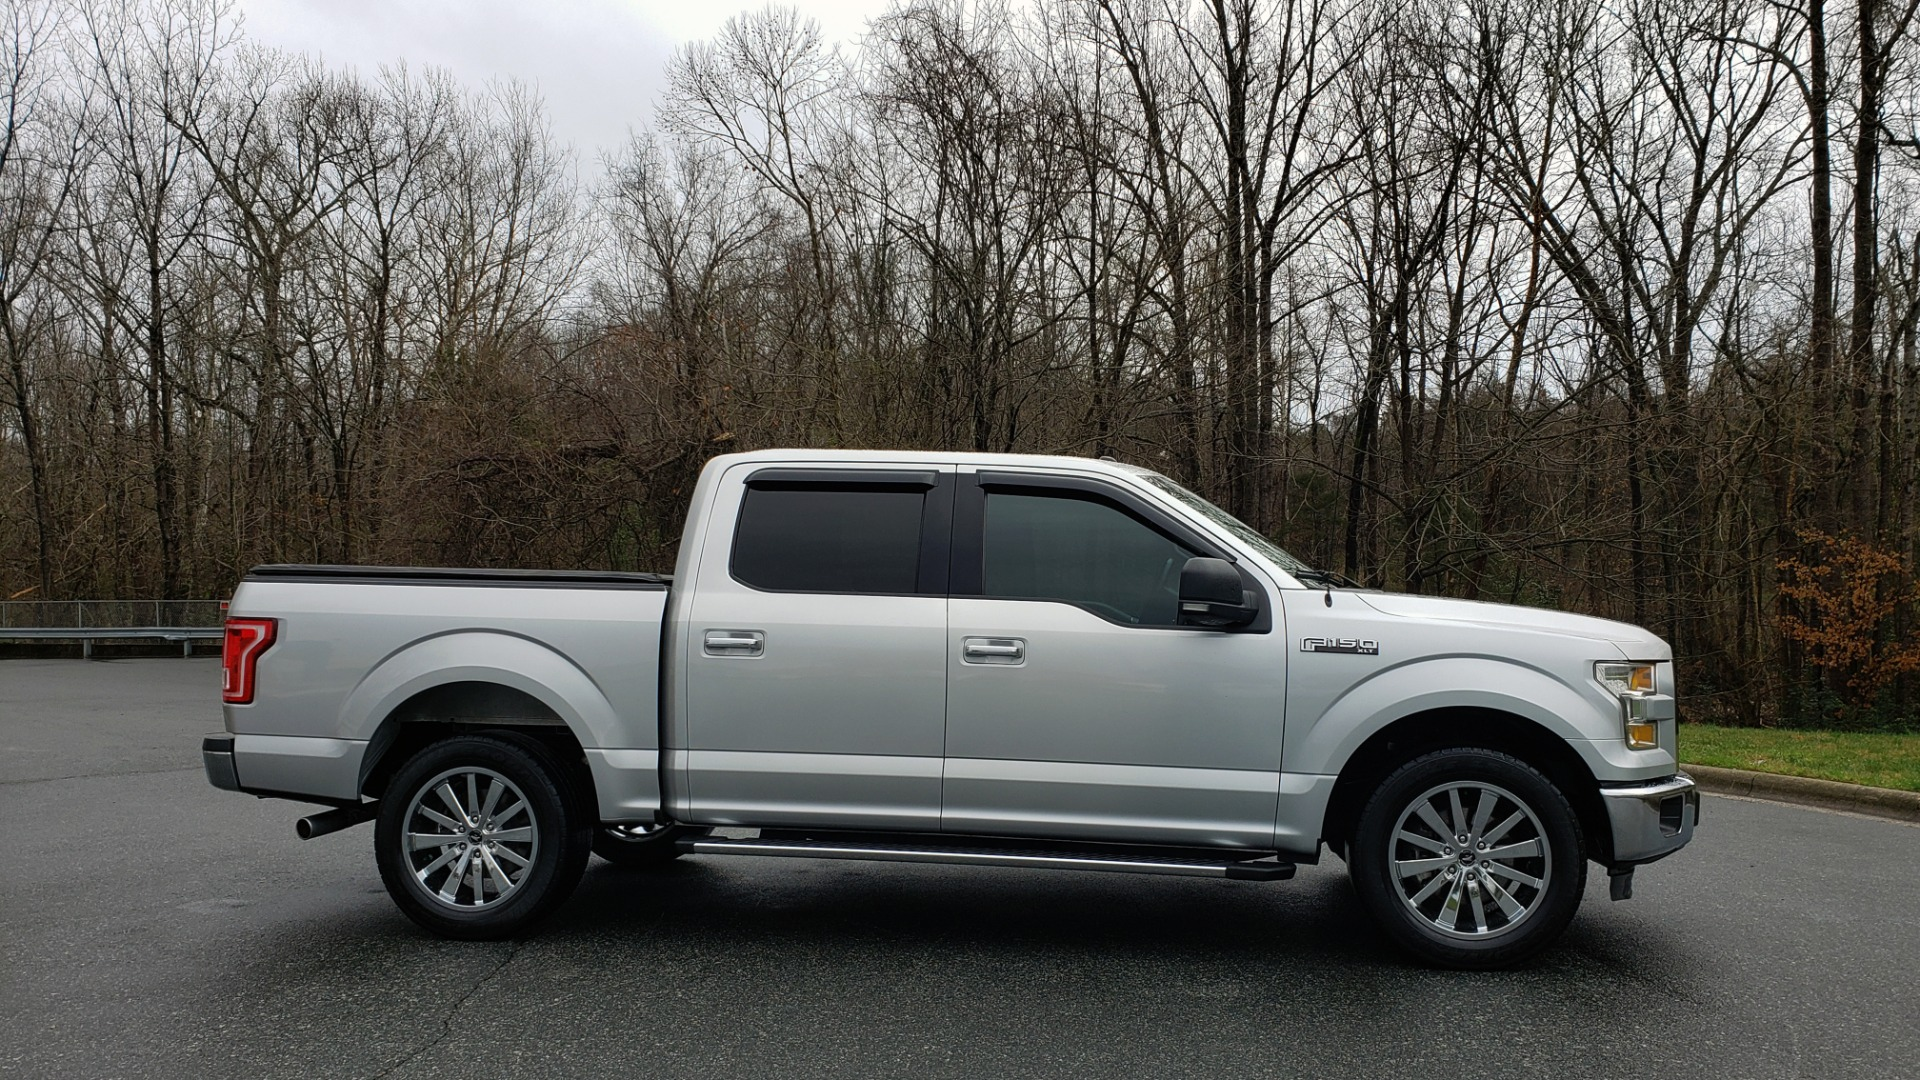 Used 2015 Ford F-150 XLT 4X2 SUPERCREW / 5.0L V8 / SYNC / REARVIEW for sale Sold at Formula Imports in Charlotte NC 28227 5